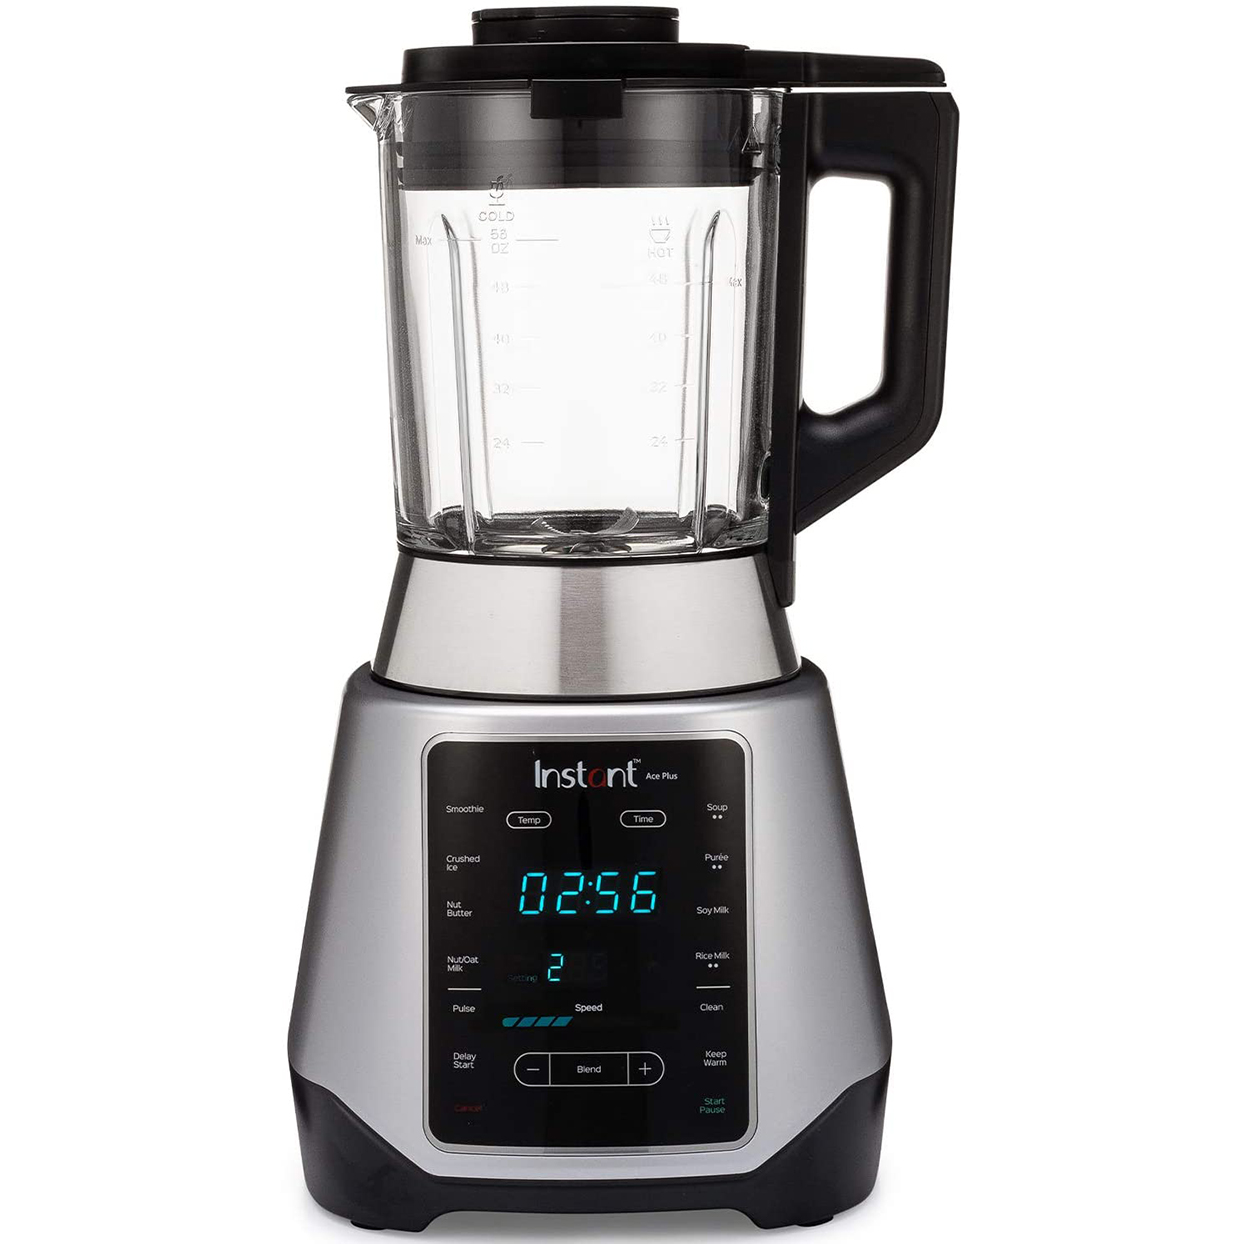 Instant Ace Plus 10-in-1 Smoothie and Soup Blender